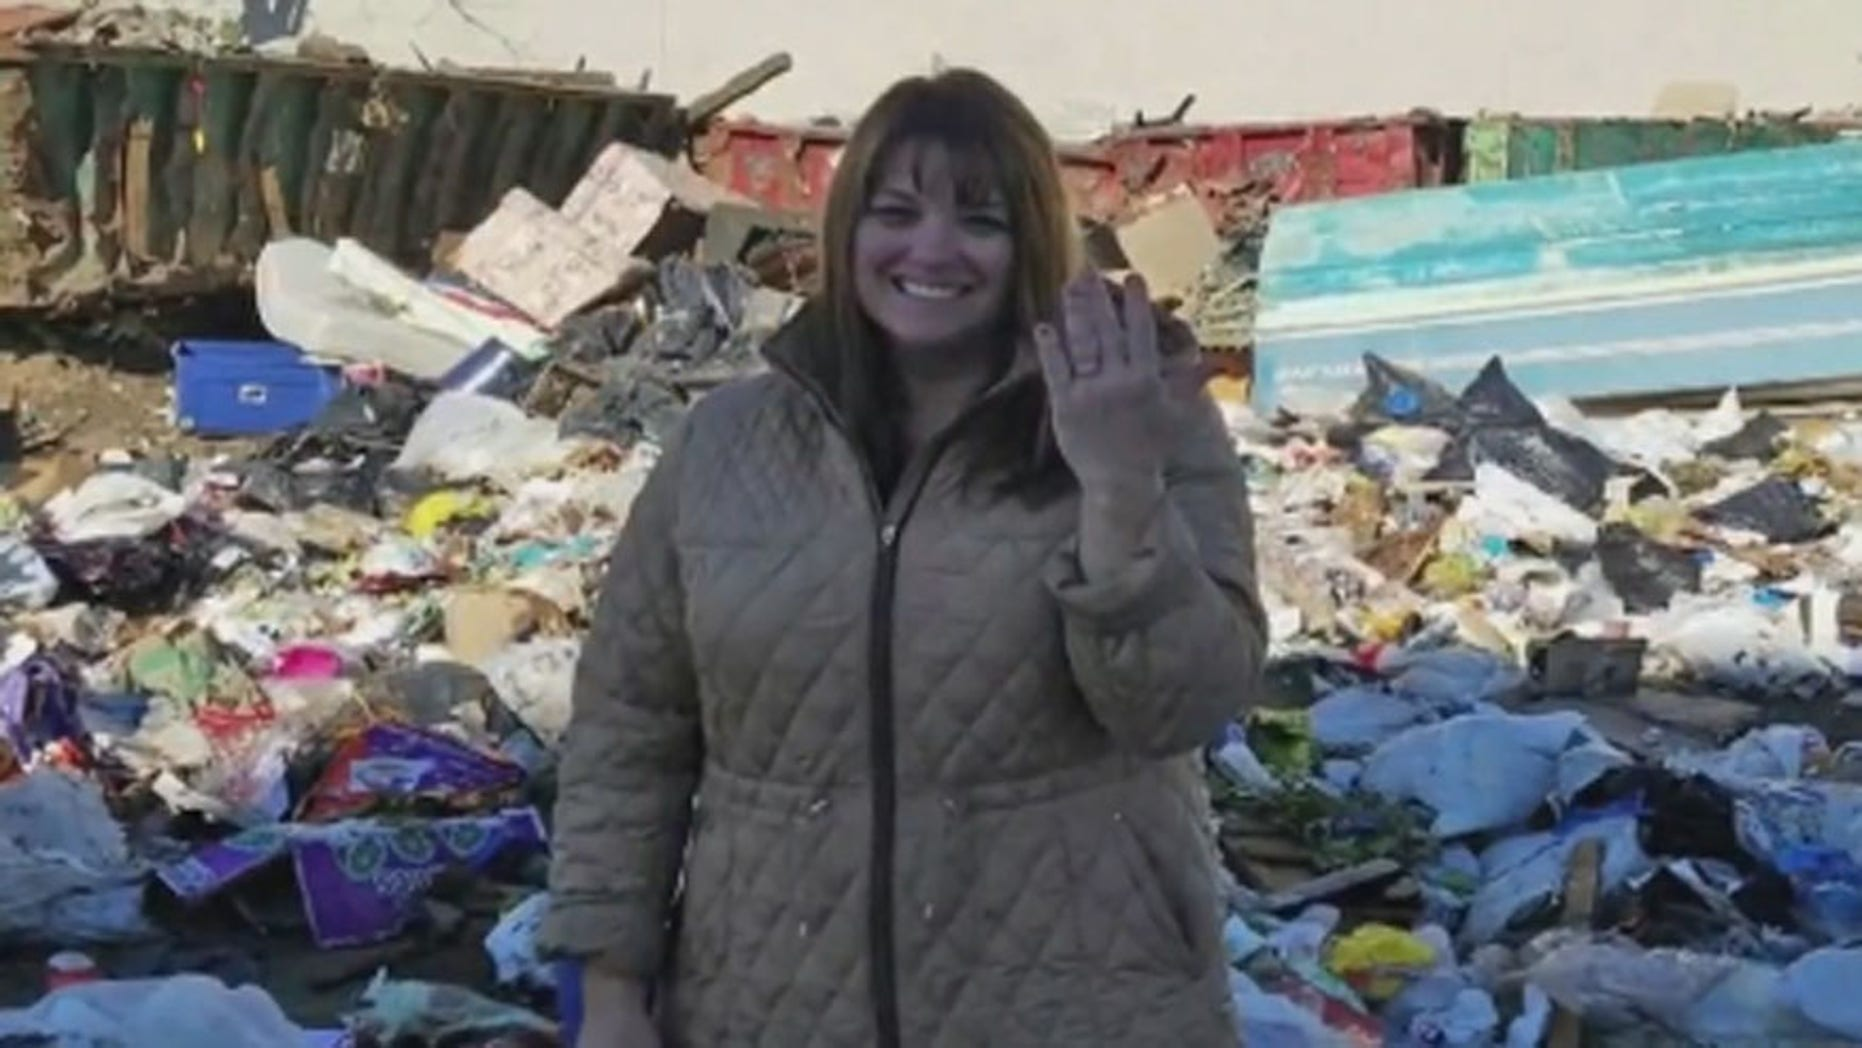 Colleen Dyckman, of Long Island, with the rings she accidentally tossed in the trash. (CBS New York)